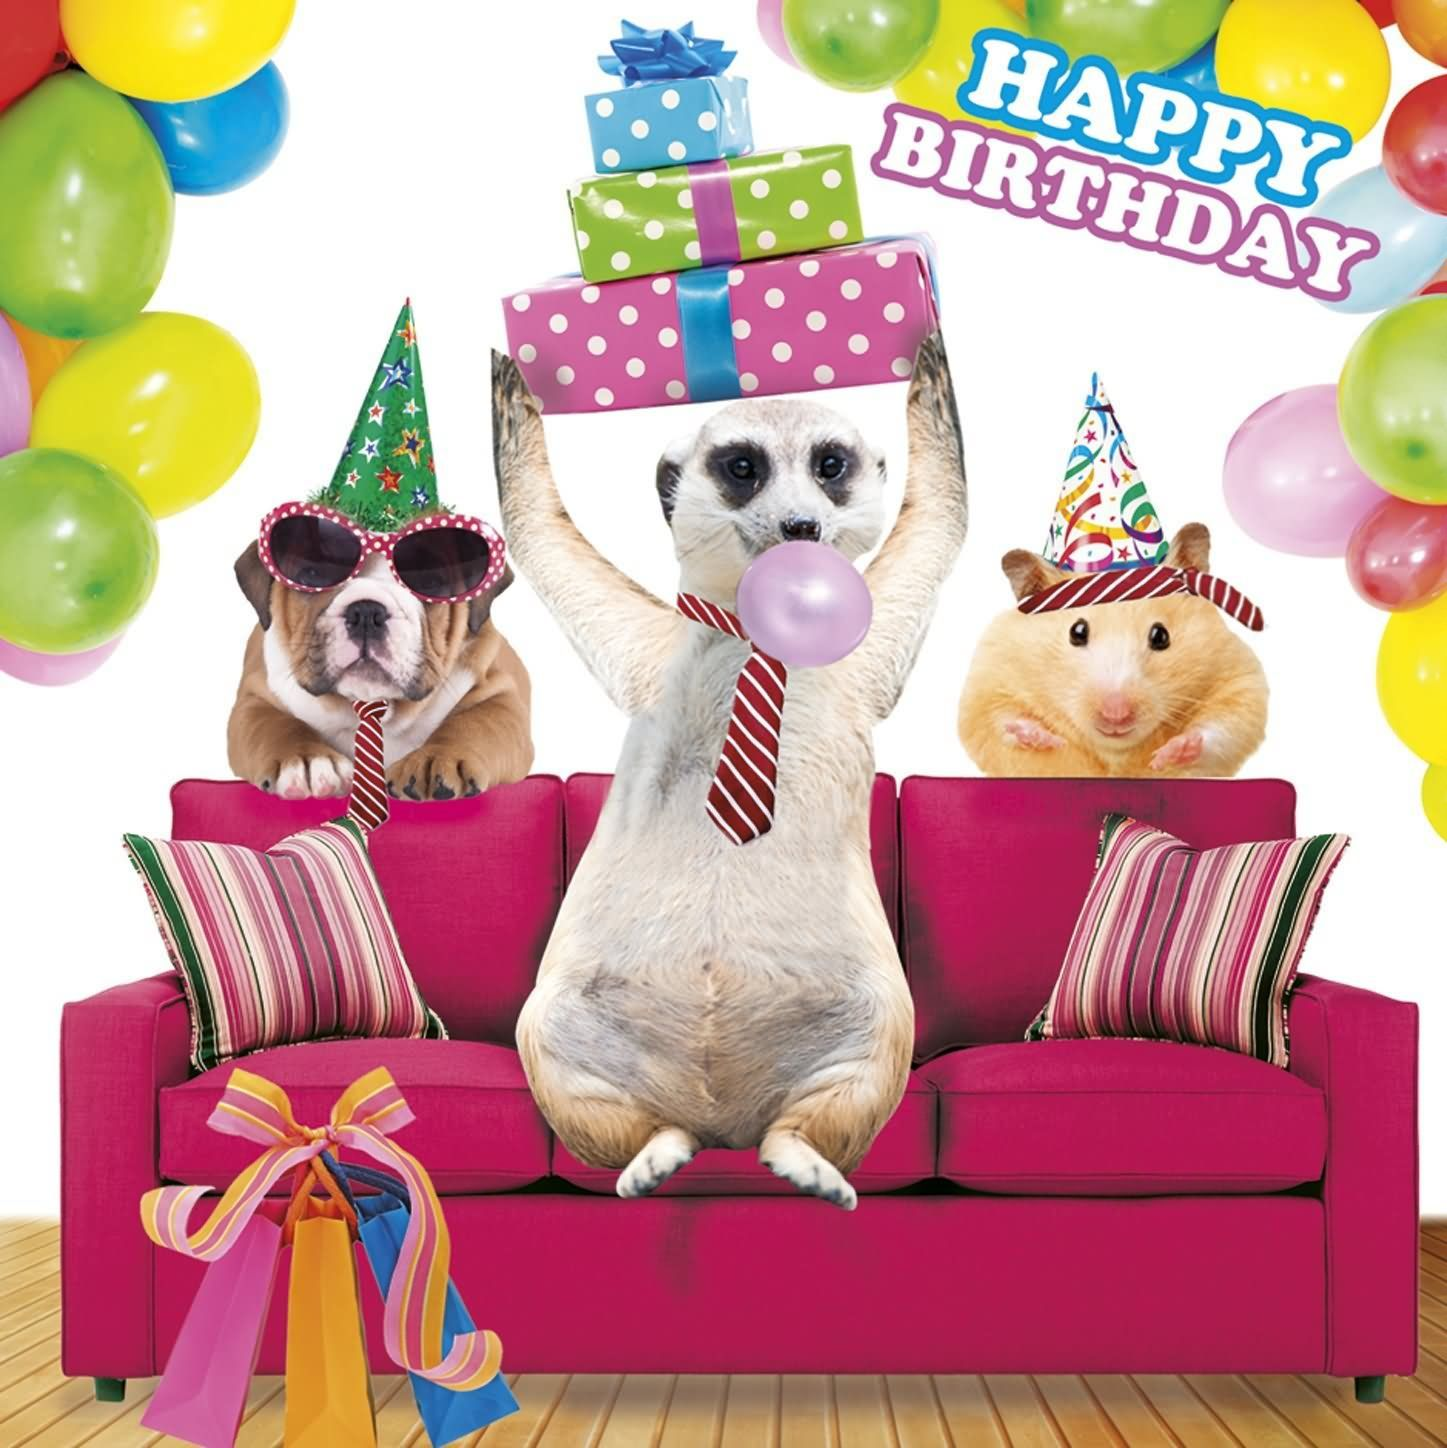 Funny Animals 20 Most Funny Birthday Pictures Funny Animals